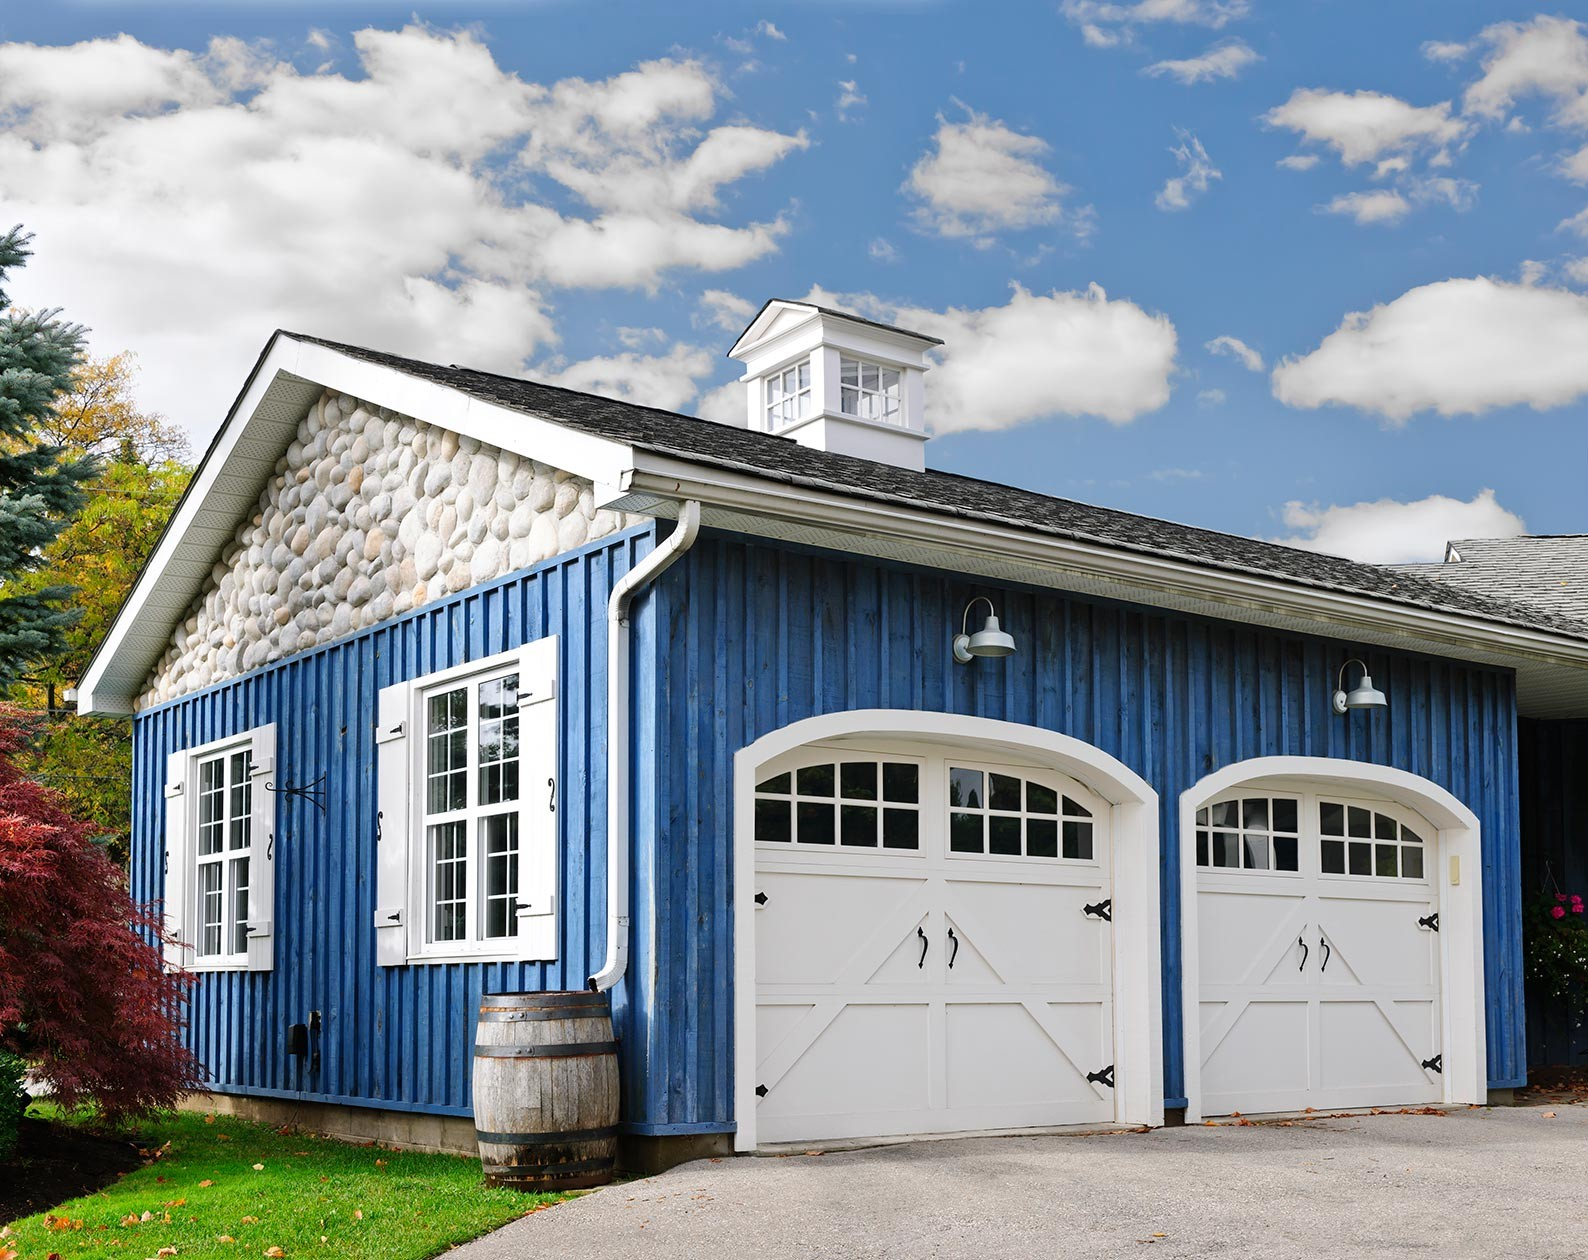 MDH Construction specializes in build detached garages for residential homes